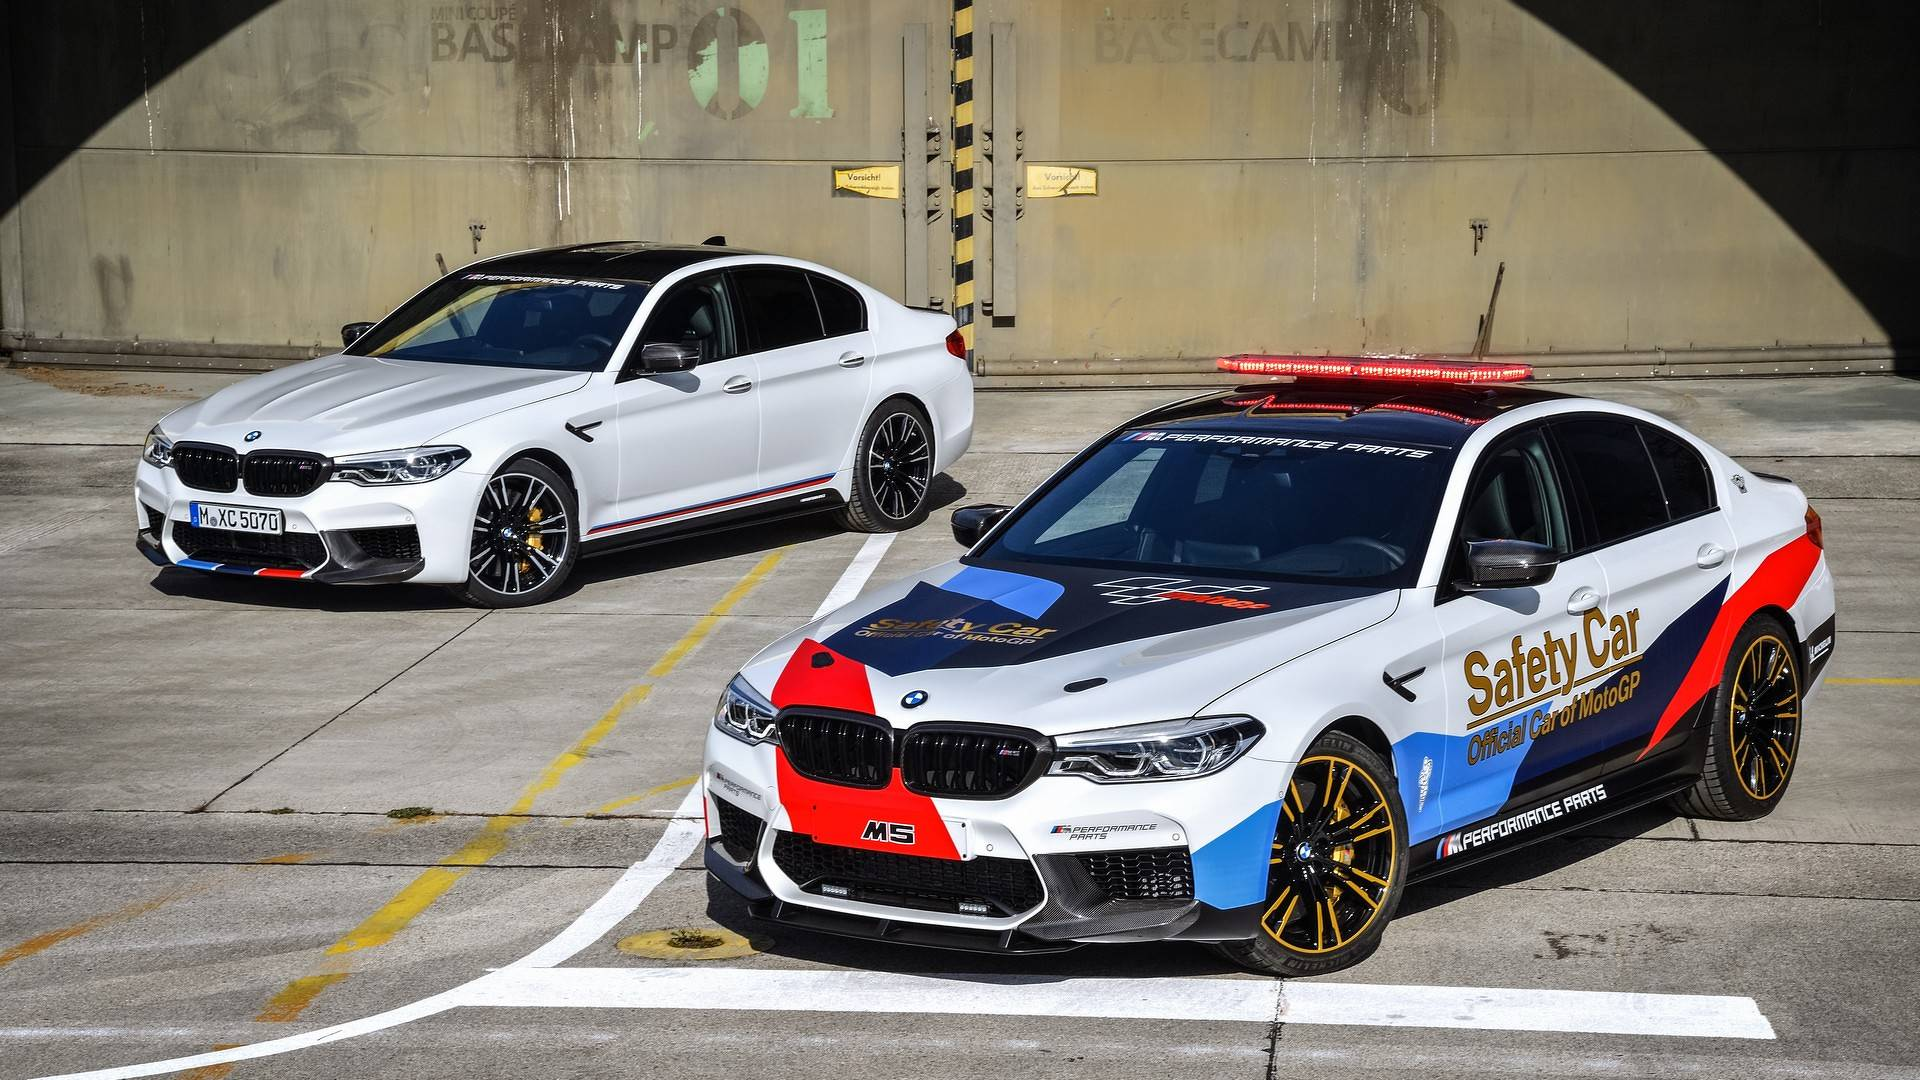 bmw-m5-motogp-safety-car (19)